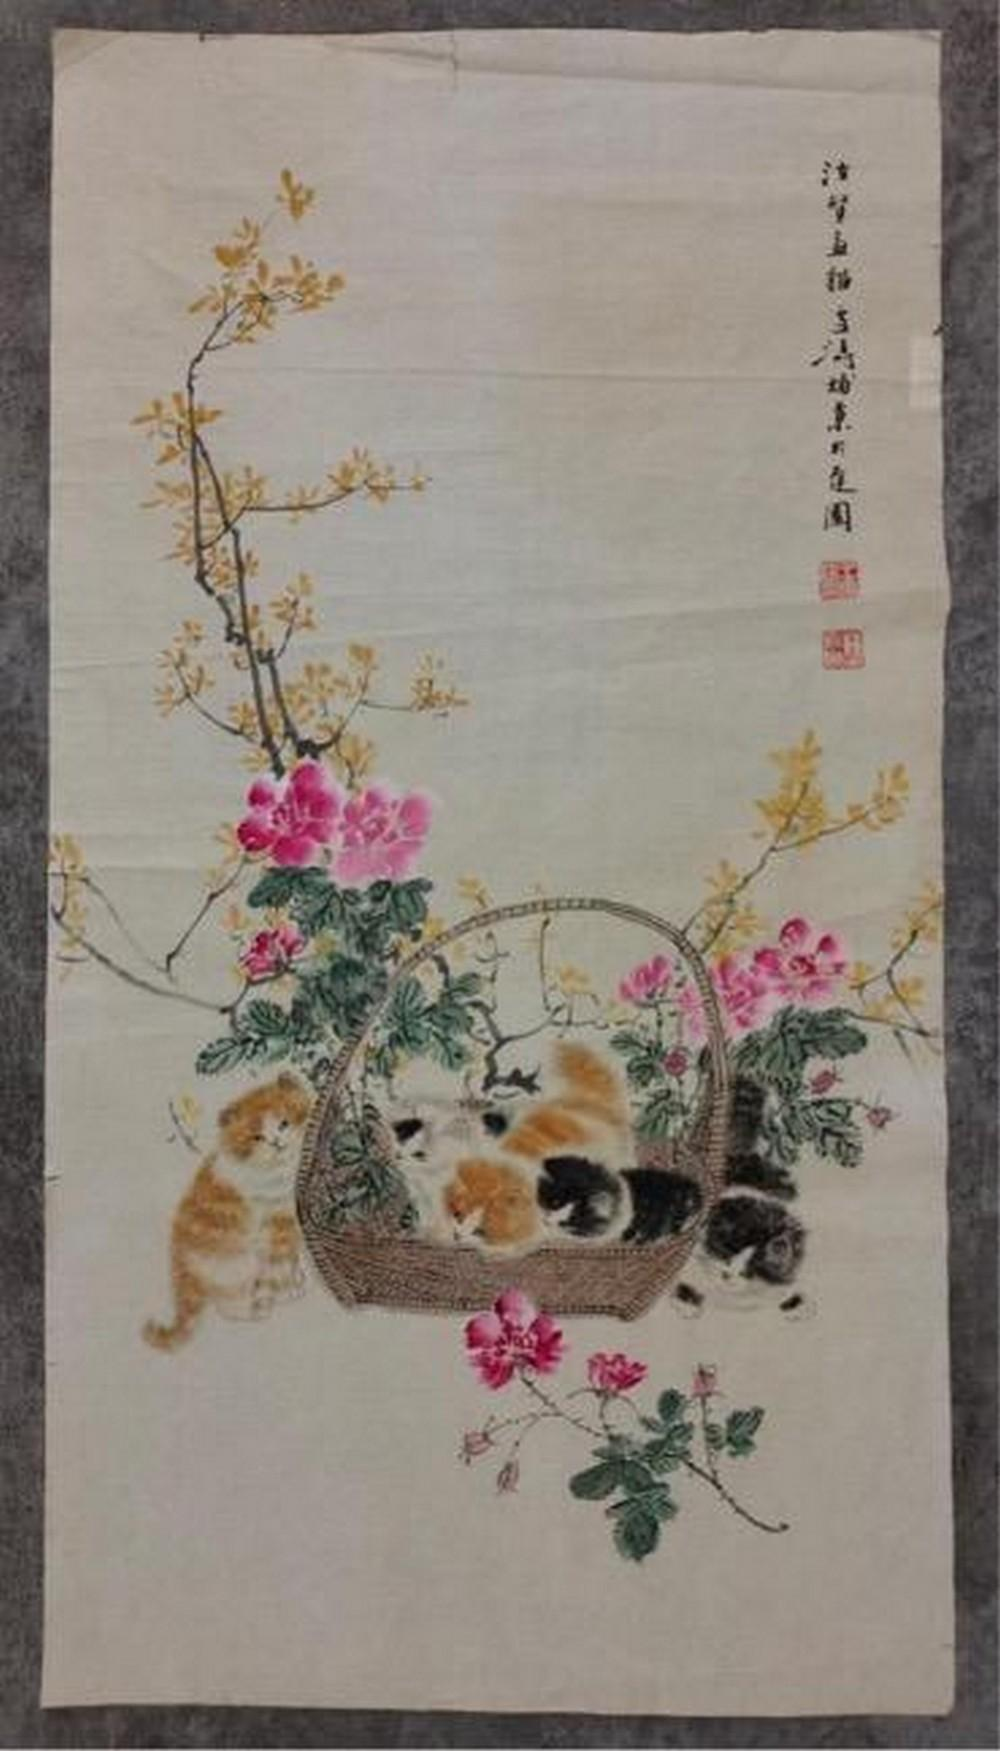 Funny cats paper scroll by Wang Xuetao and Cao Kejia